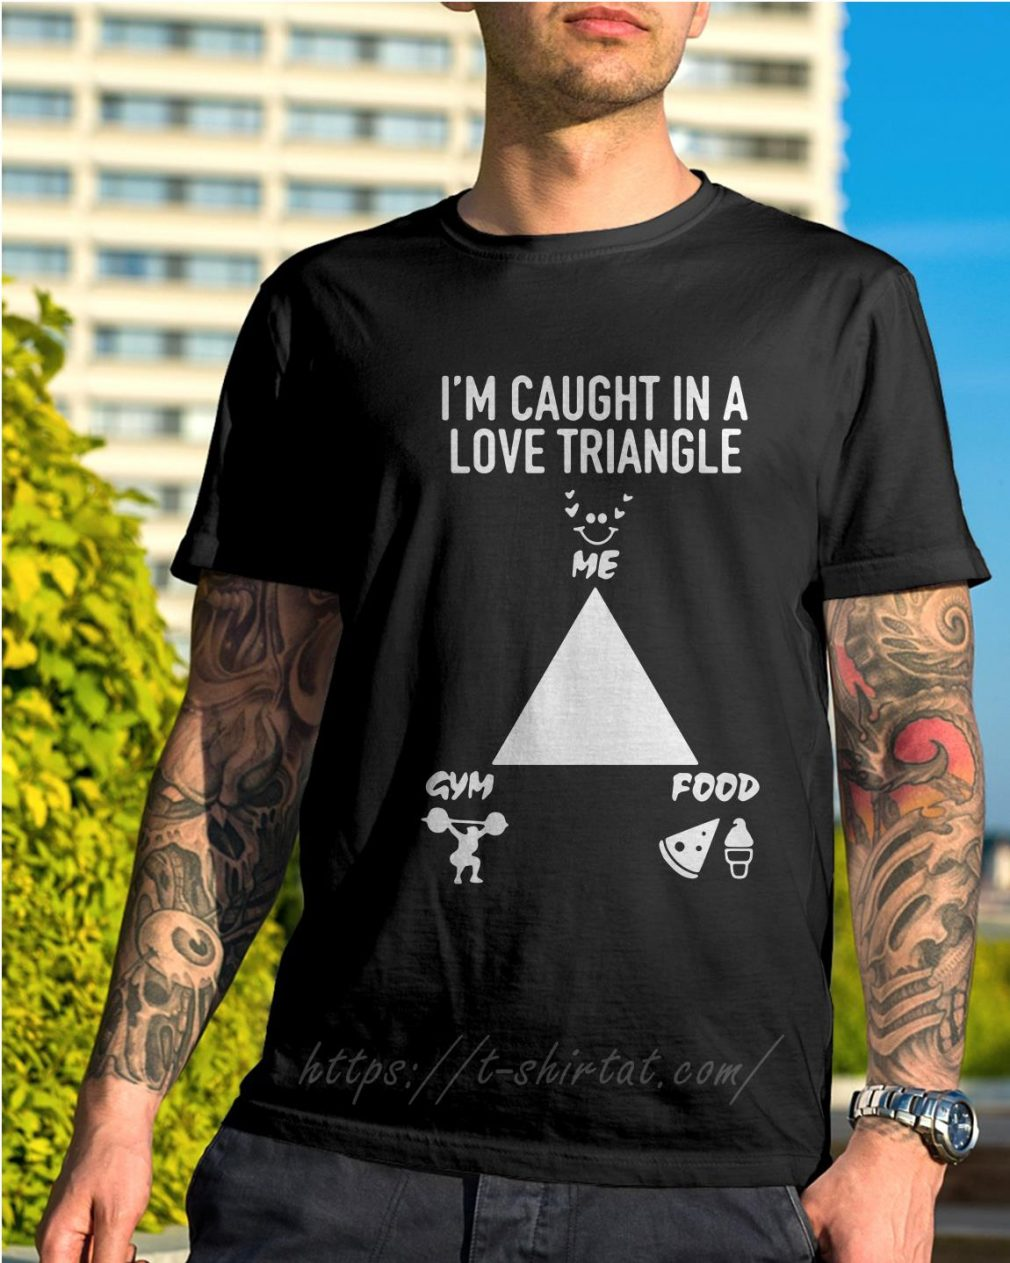 I'm caught in a love triangle me gym food shirt